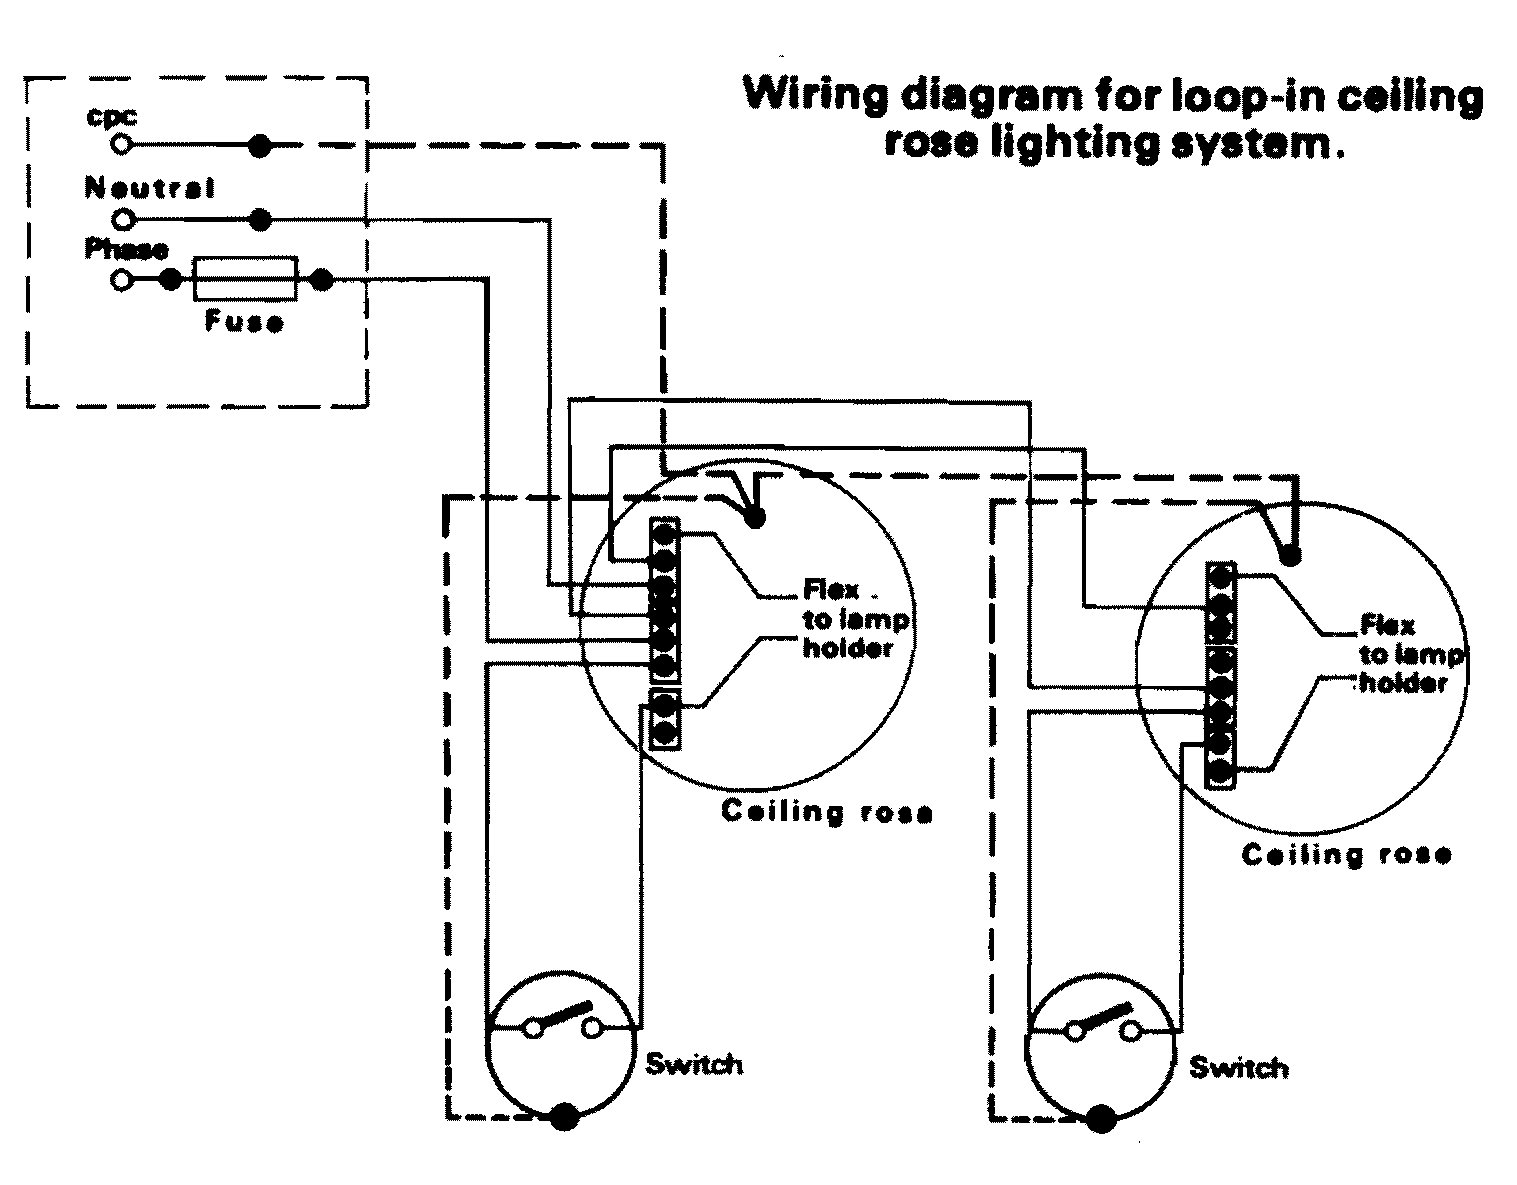 to follow code for cable circuit breakers and wiring methods